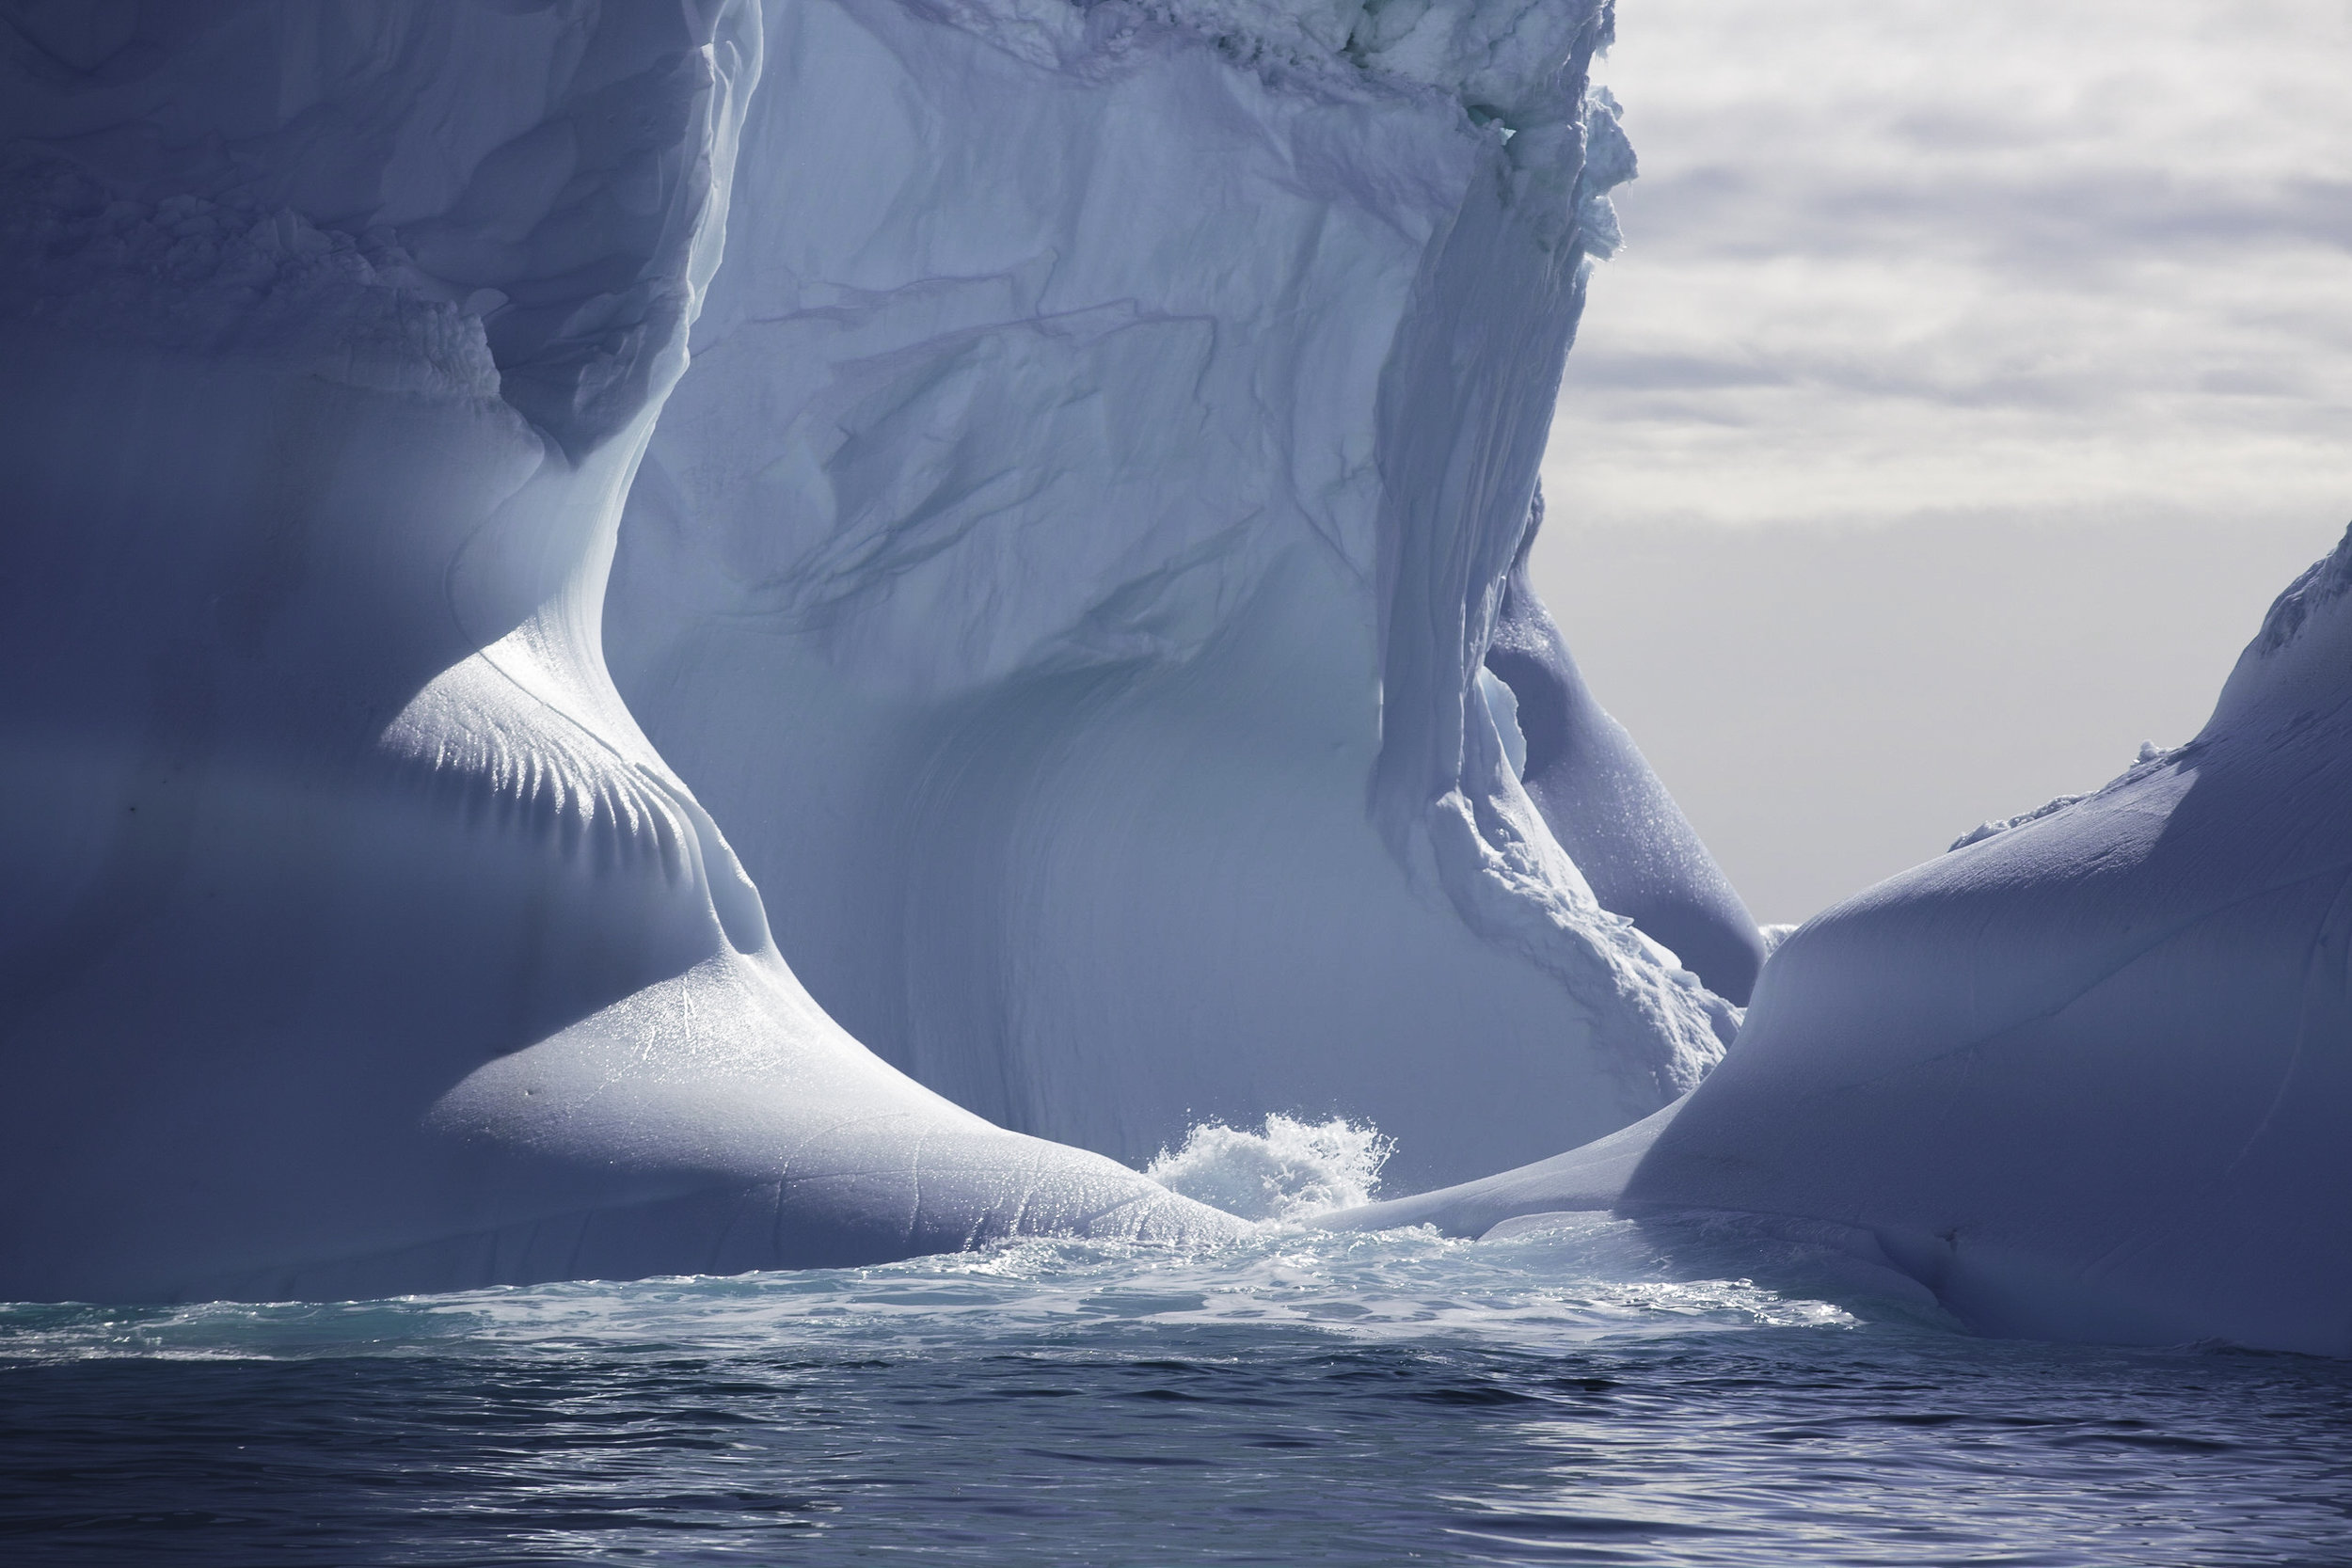 A wave splashes in and out of a large pool formed in the base of four towers protruding up from a large iceberg.